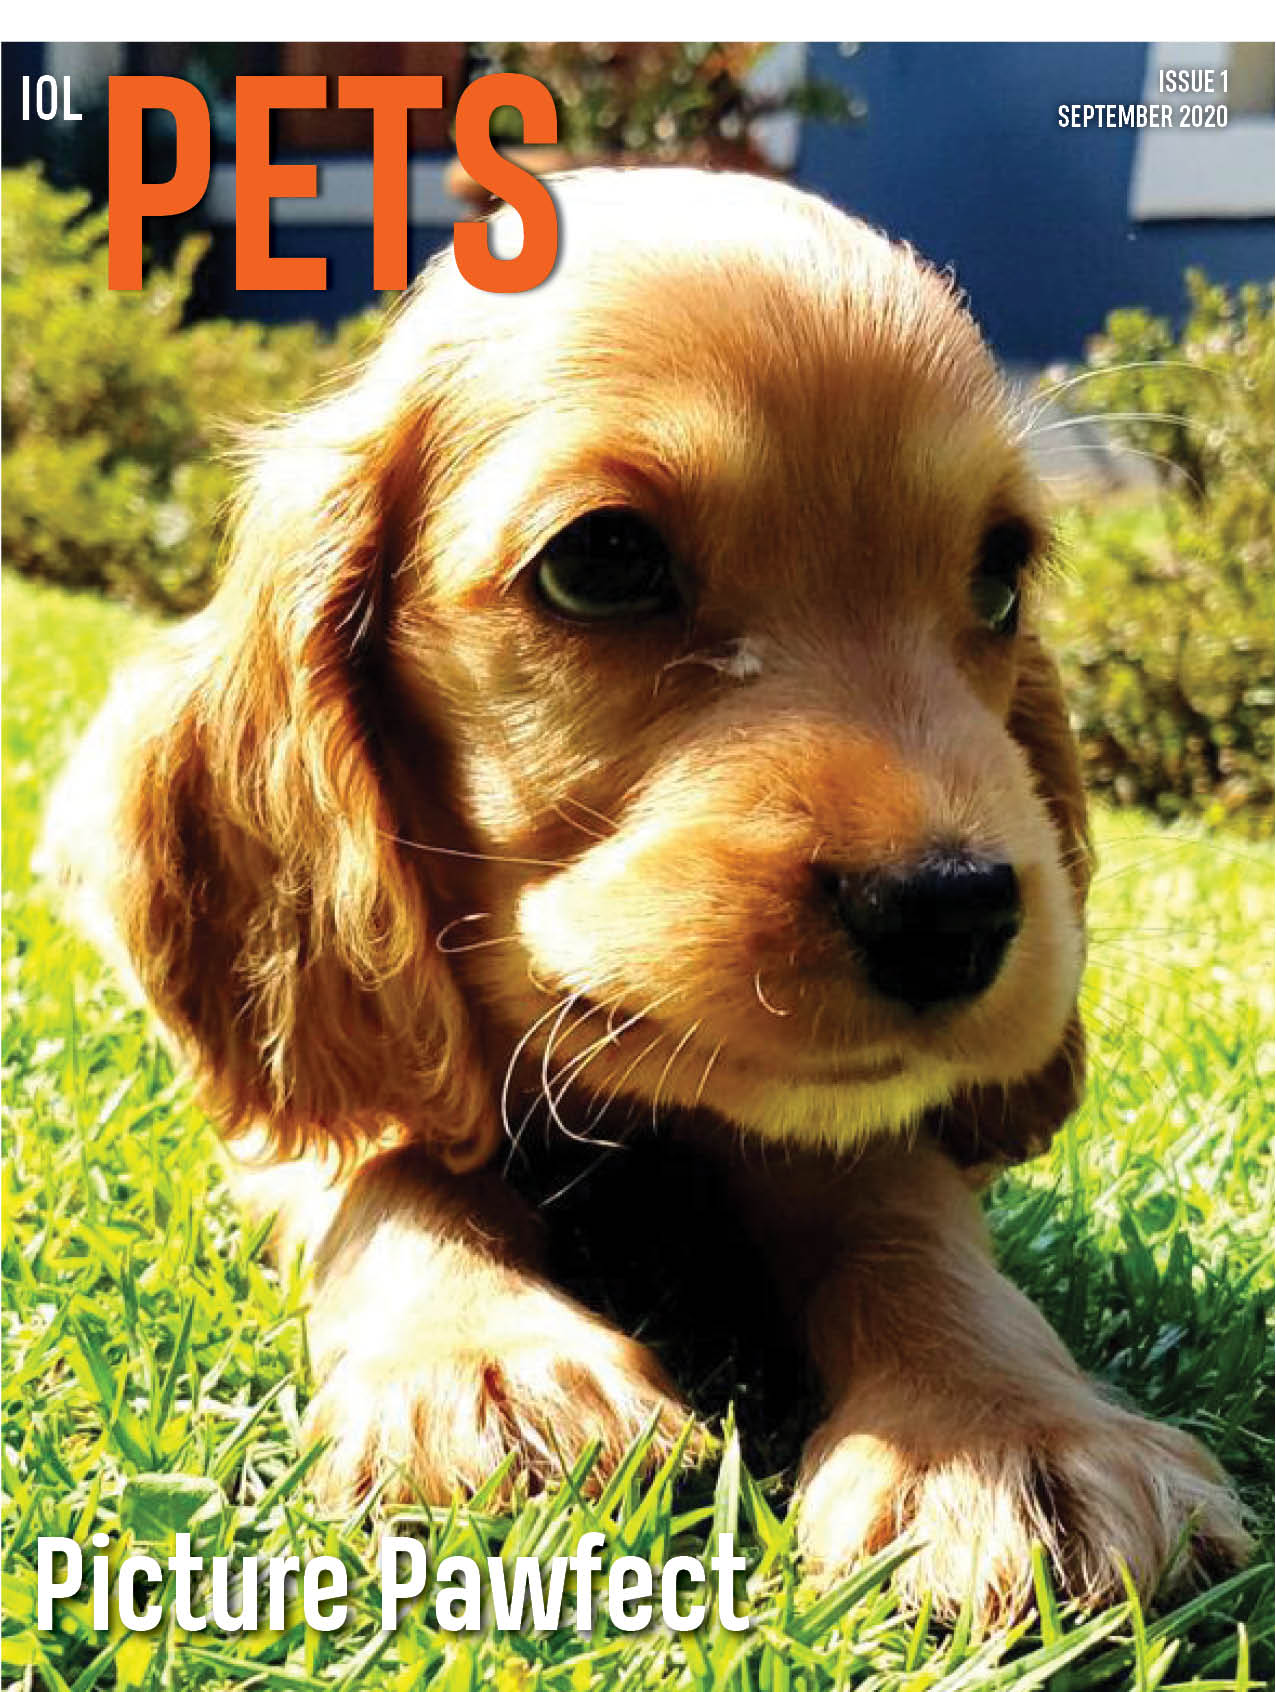 IOL Pets Issue 1